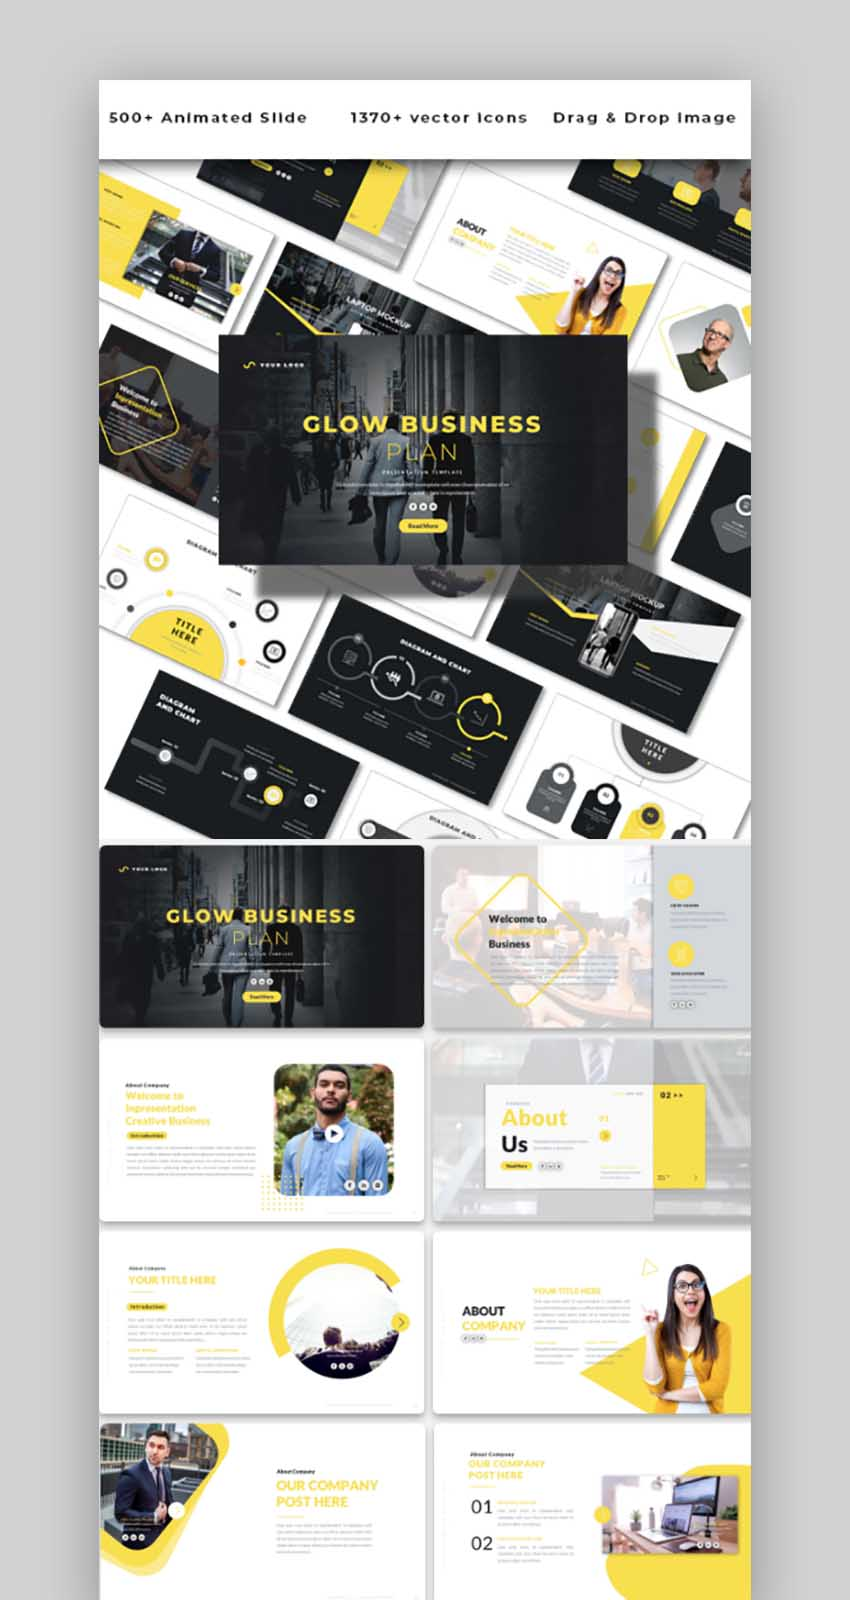 Glow Business Plan - Powerpoint Template